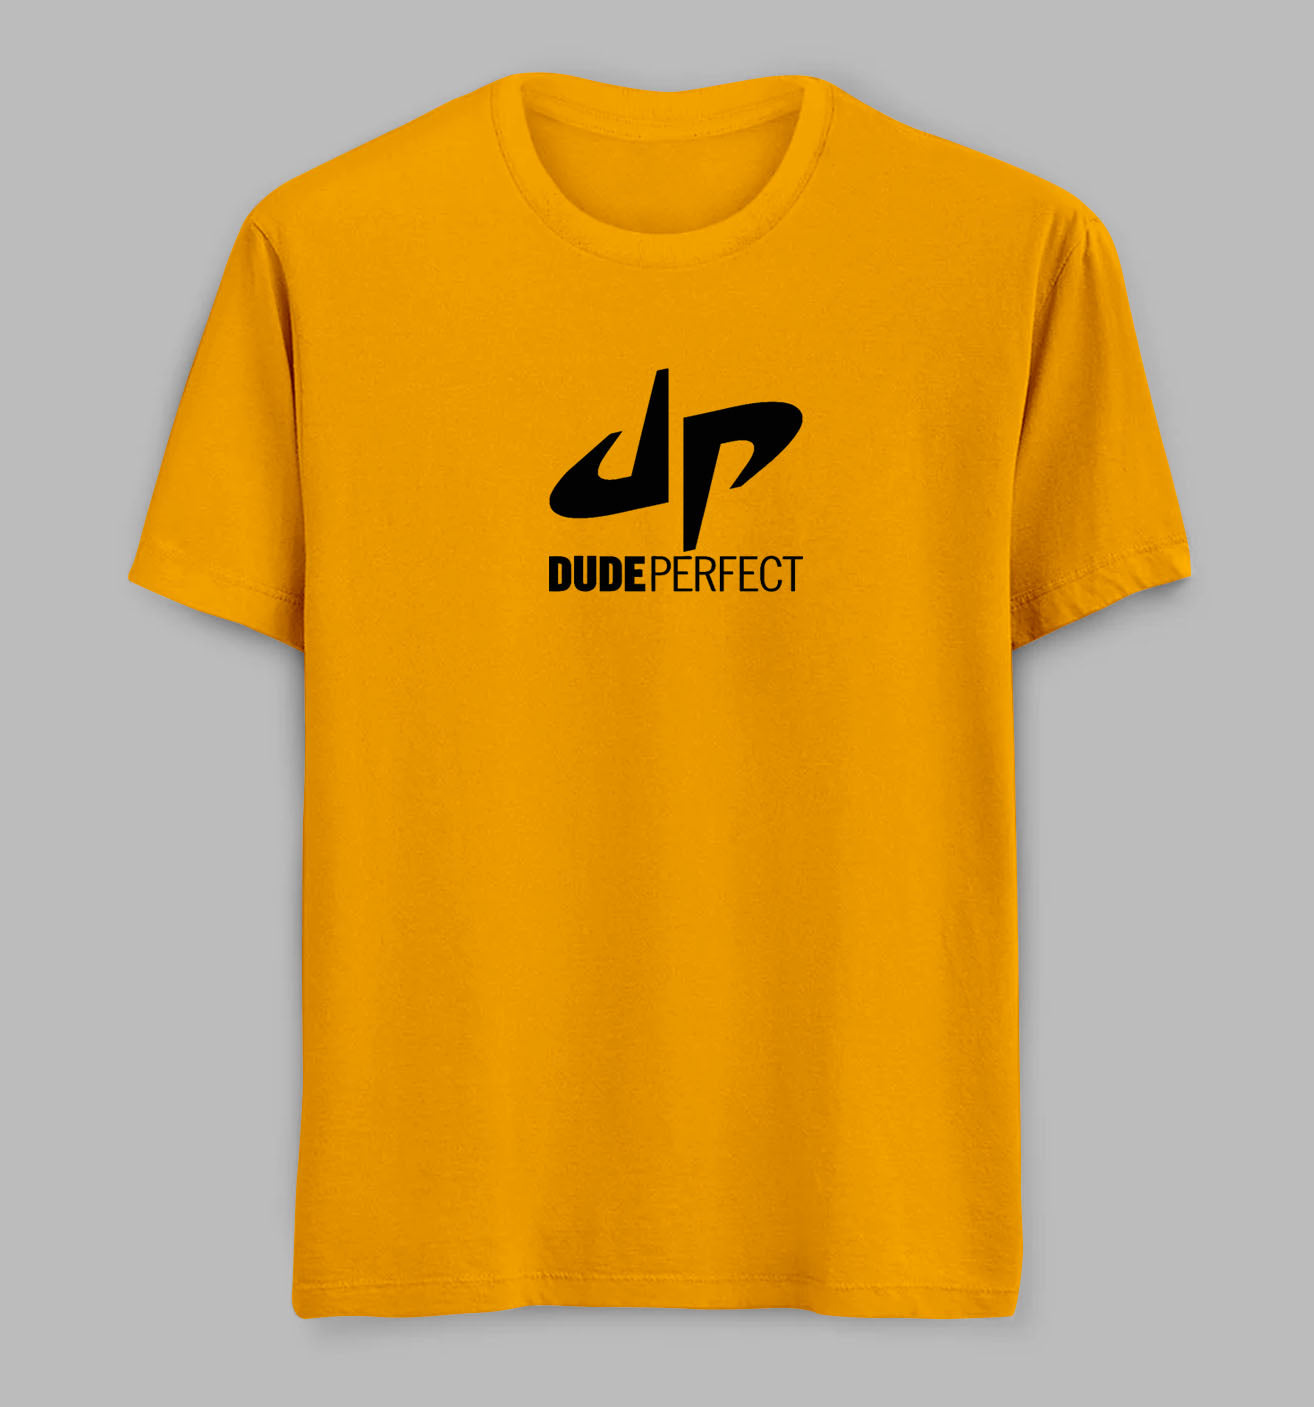 Dude Perfect Tees/Tshirts